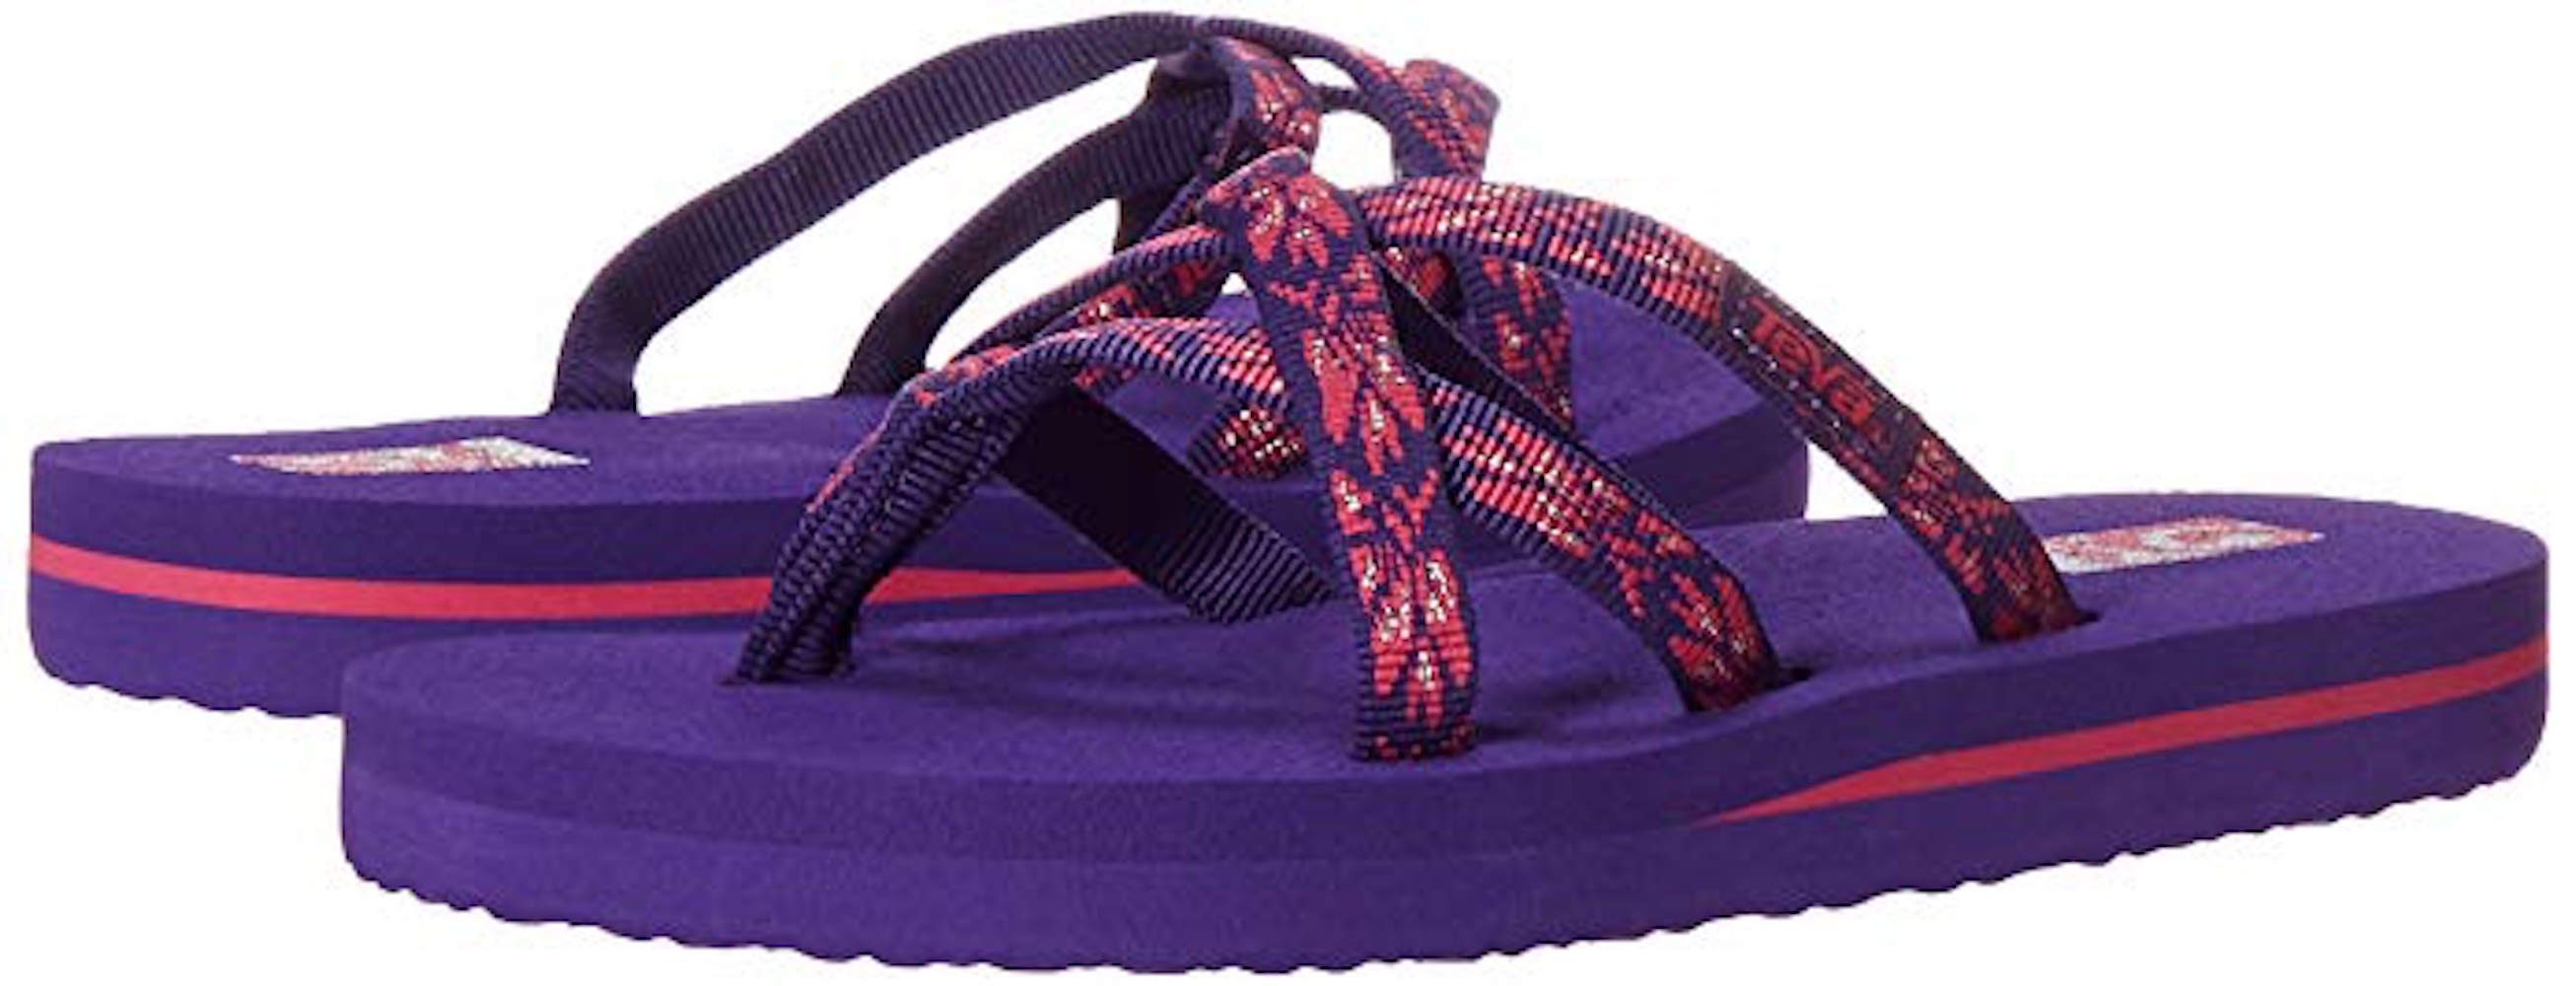 55278ab0fcf99b Kids Teva Girls Olowahu Slip On Flip Flops